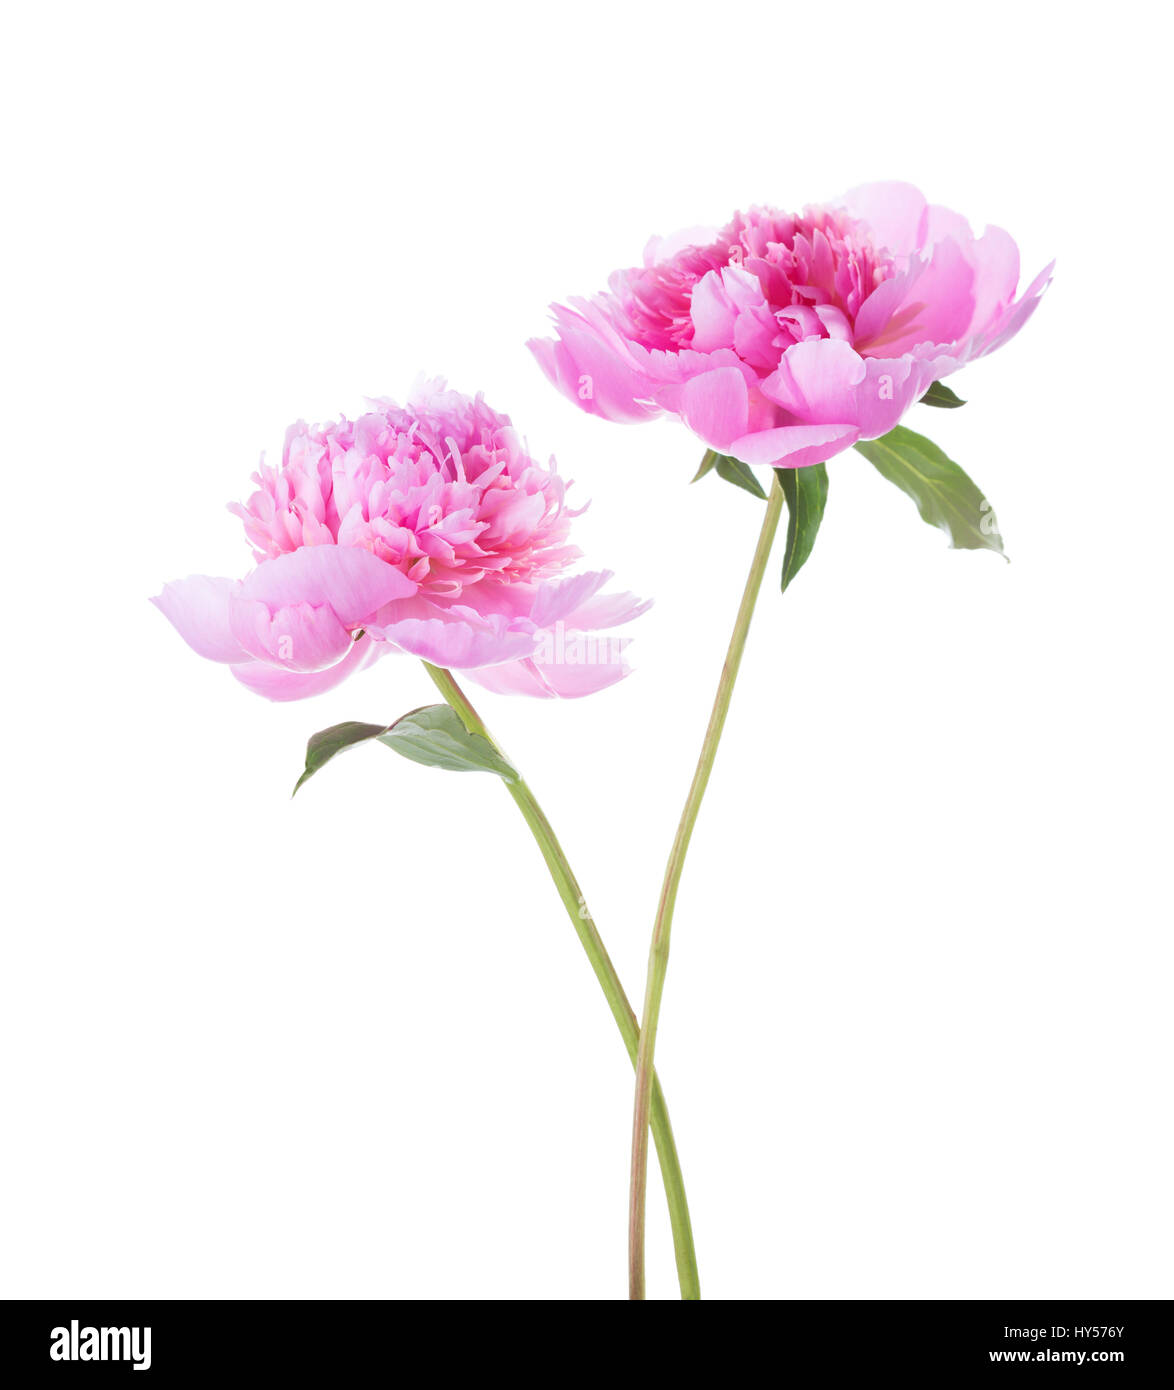 Two light pink peonies isolated on white background. - Stock Image